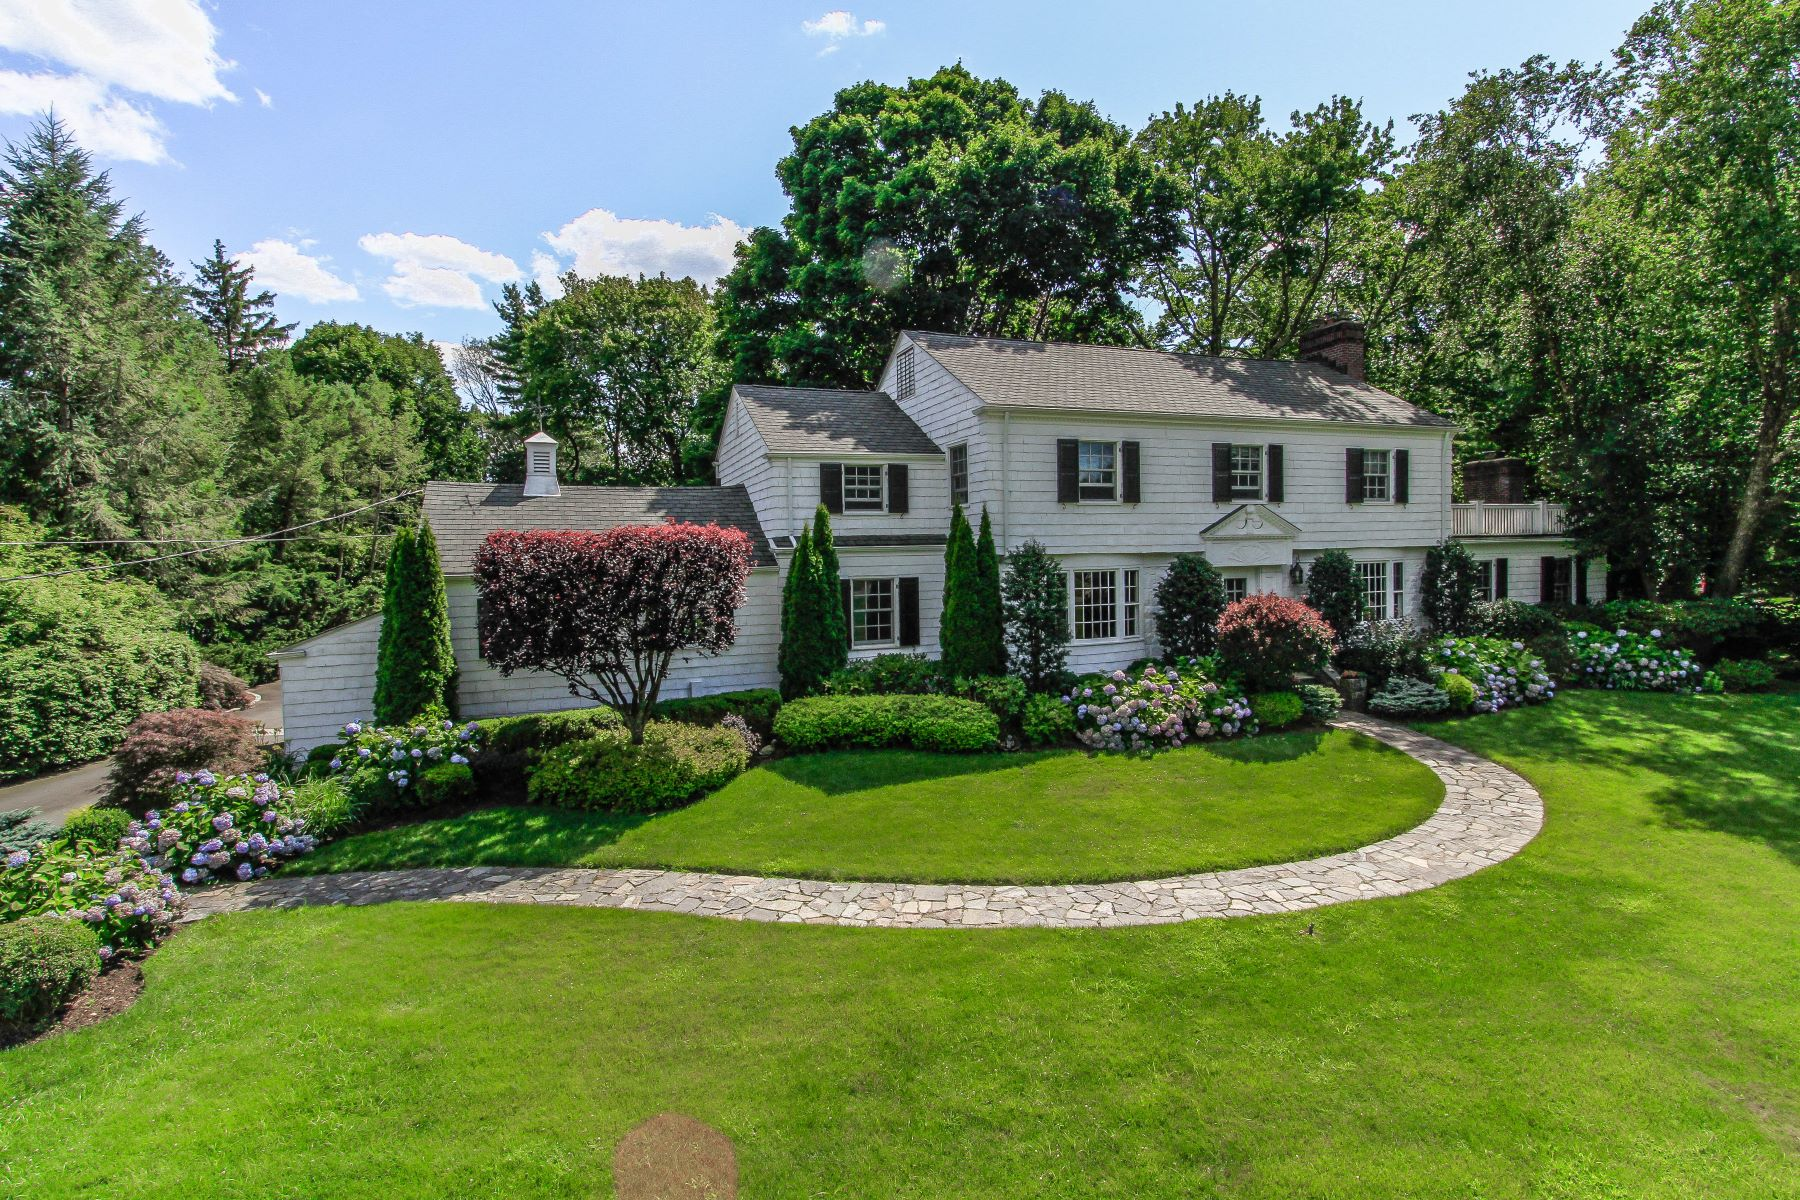 Villa per Vendita alle ore 134 Haviland Road Harrison, New York, 10528 Stati Uniti